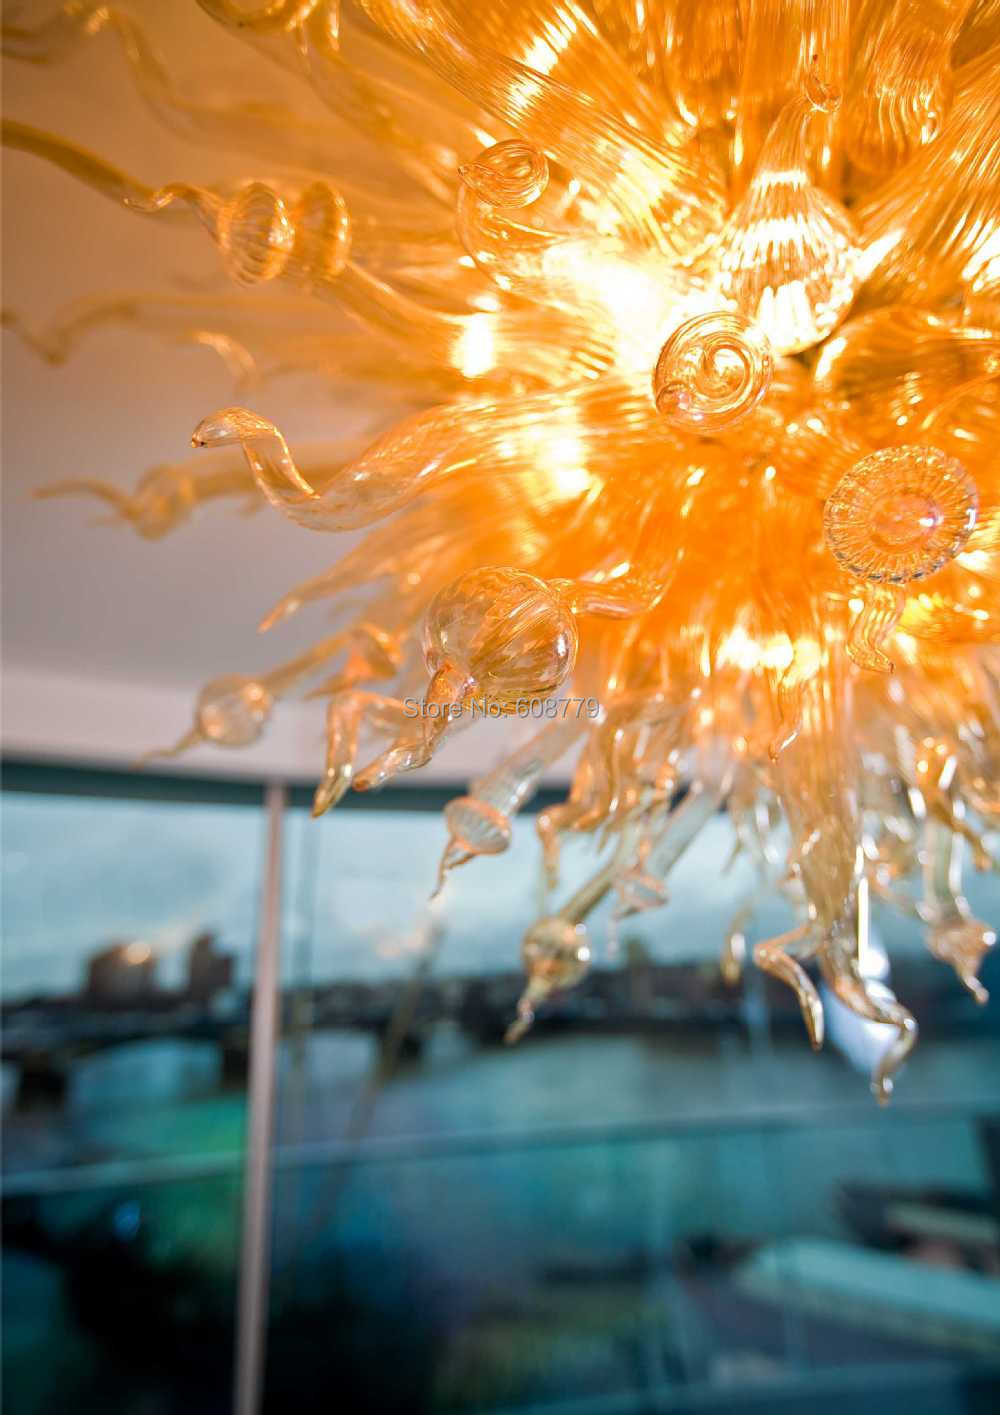 Free Shipping High Quality Blown Glass Amber ChandeliersFree Shipping High Quality Blown Glass Amber Chandeliers